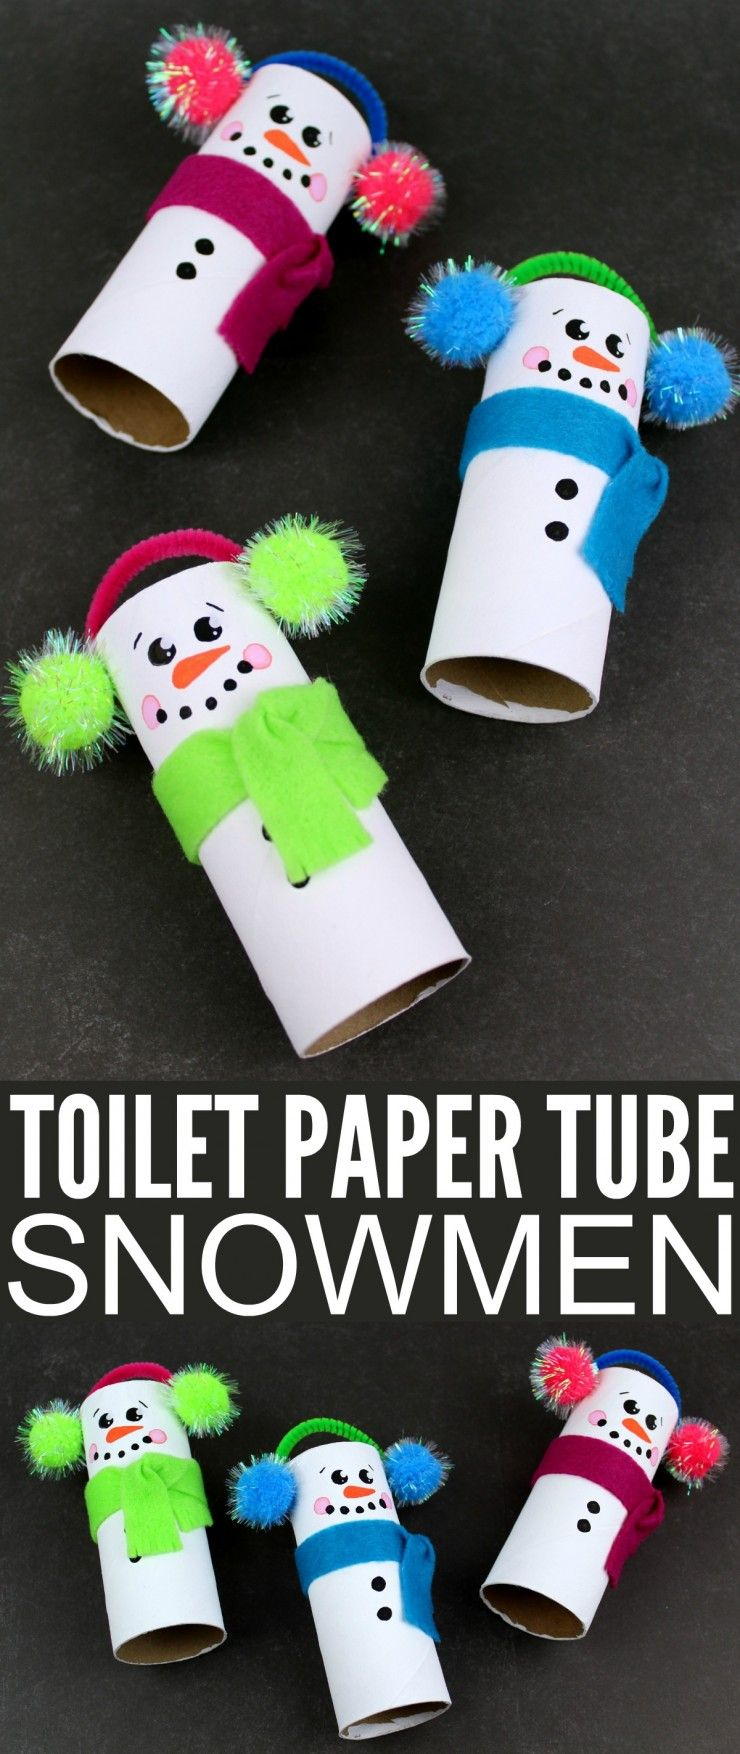 Recycled Toilet Paper Tube Snowmen #creativegifts